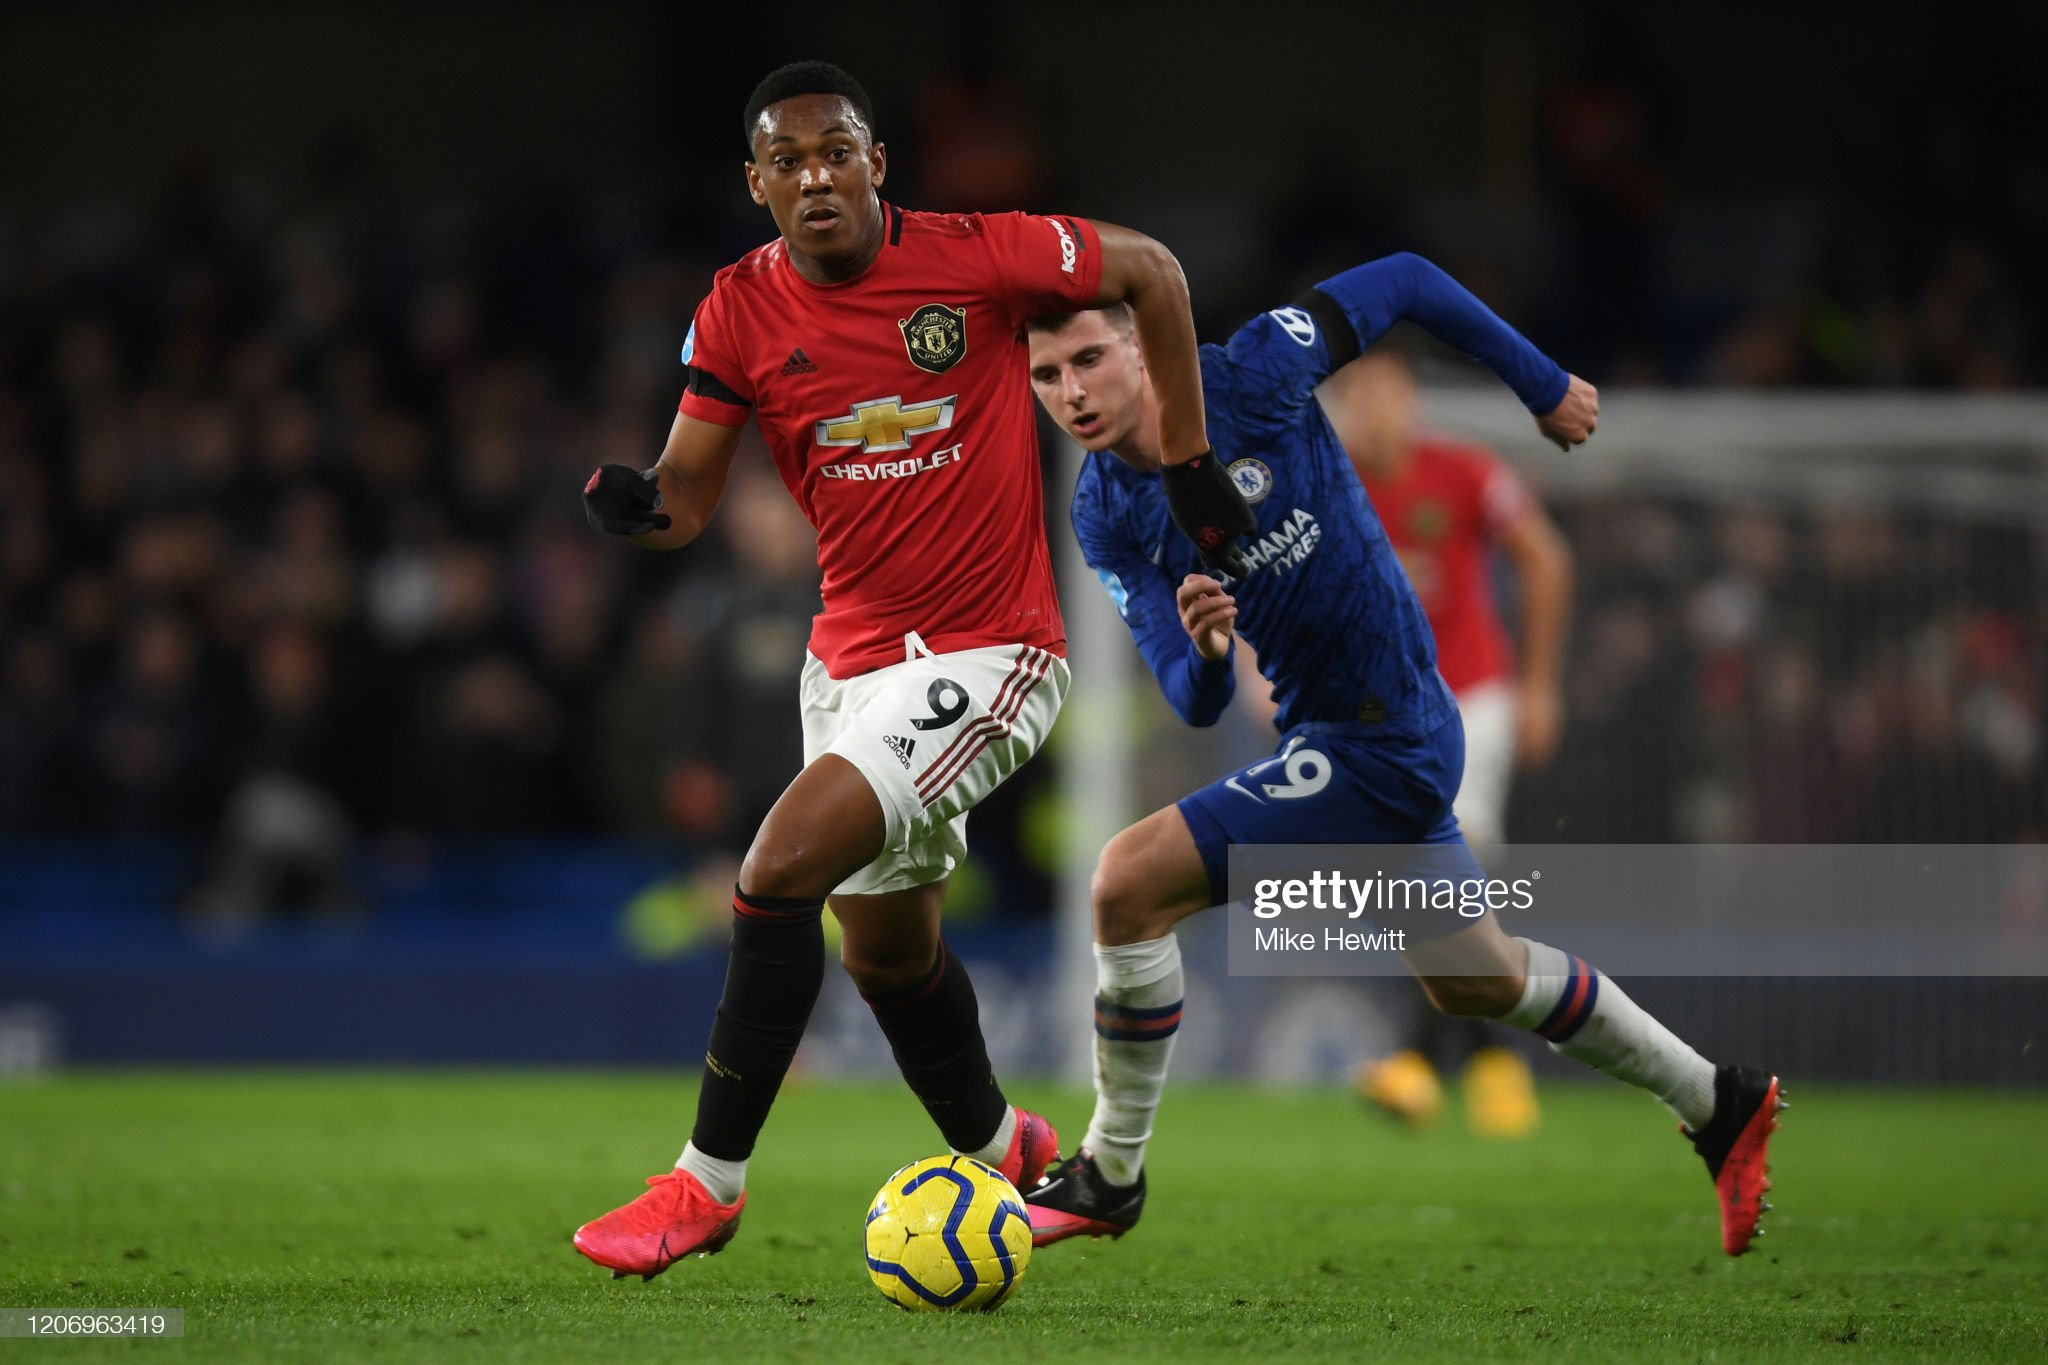 Manchester United vs Chelsea Preview, prediction and odds